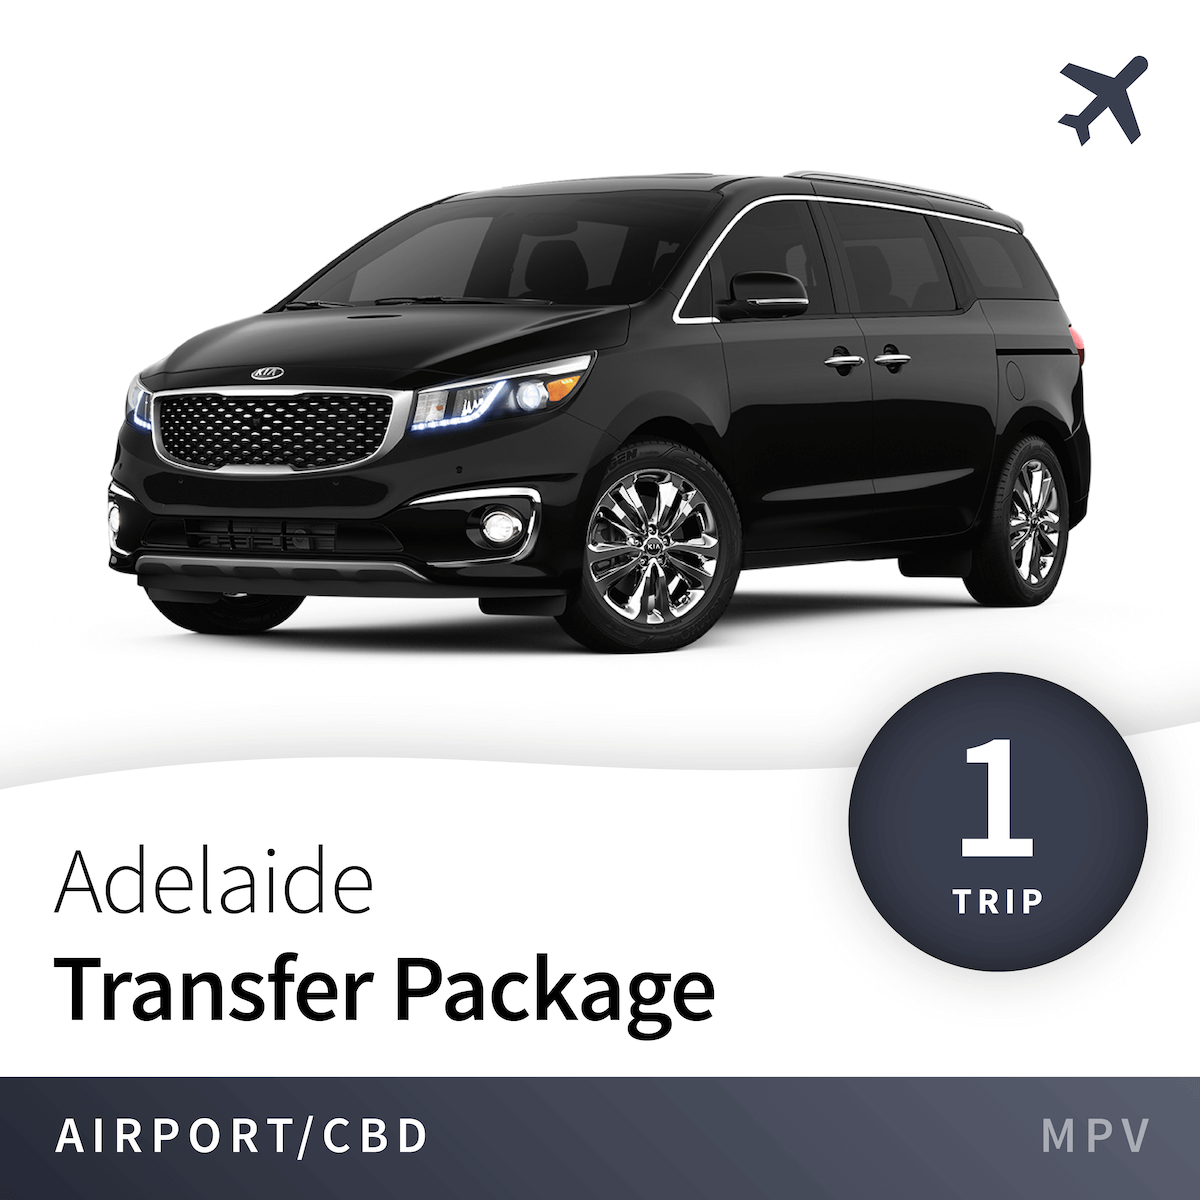 Adelaide Airport Transfer Package - MPV (1 Trip) 6